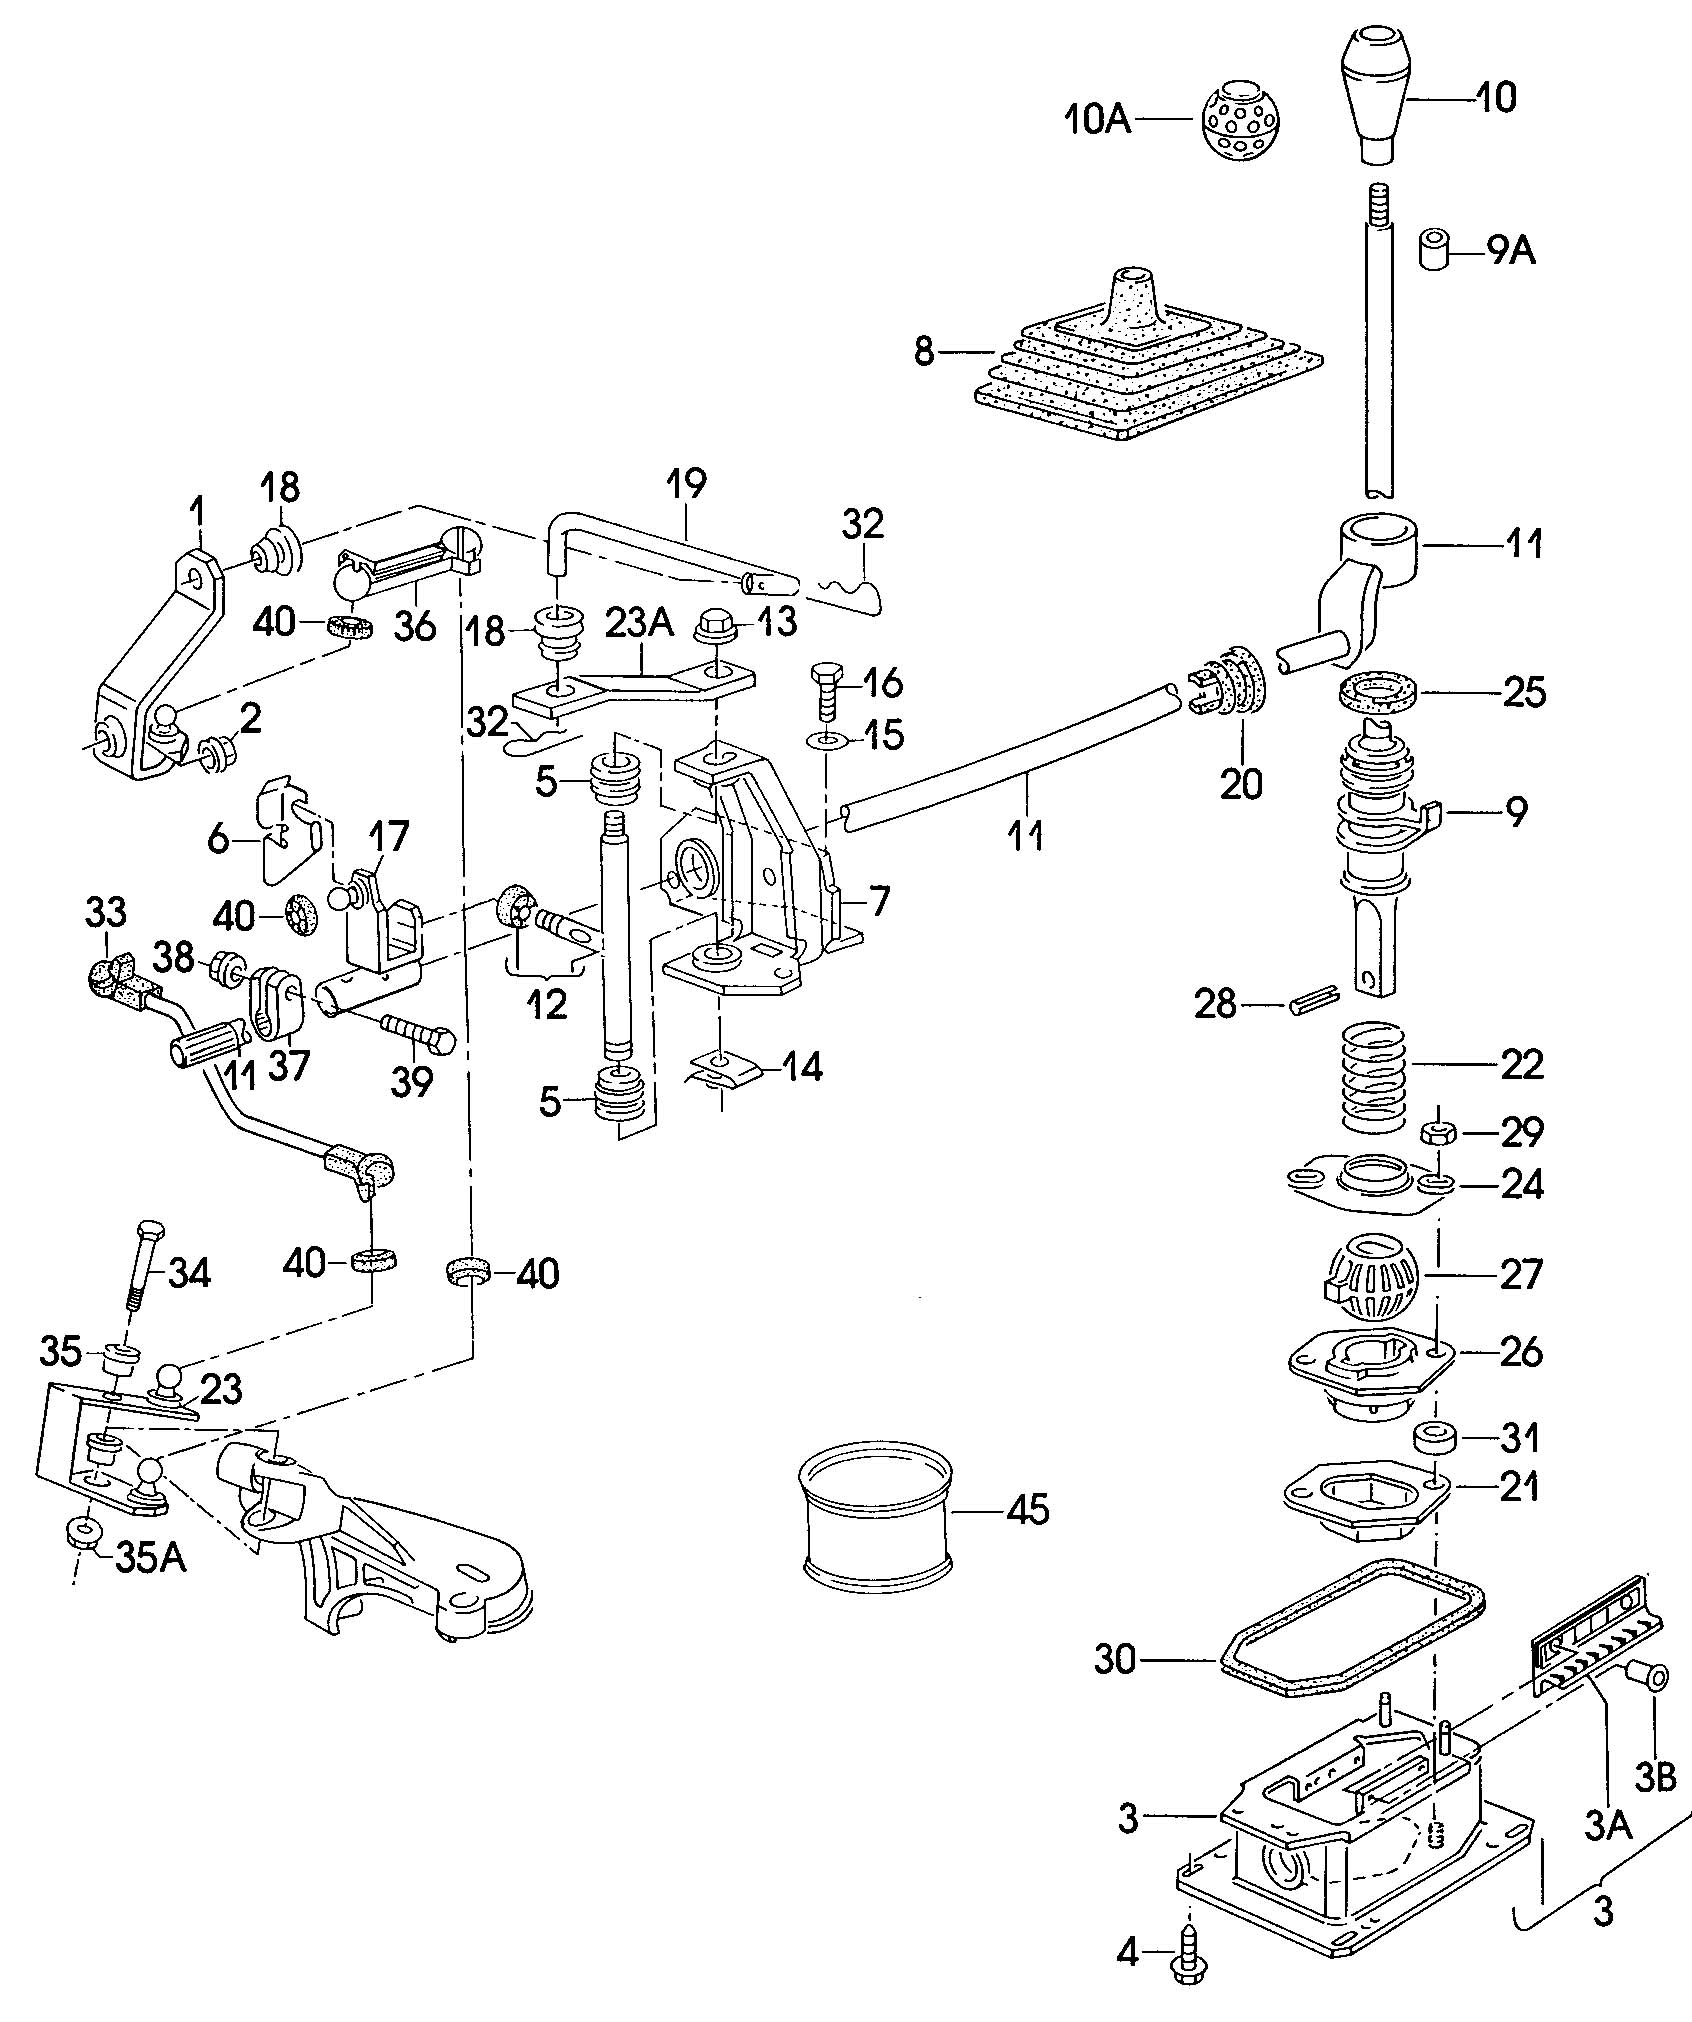 2008 Vw Gti Wiring Diagram